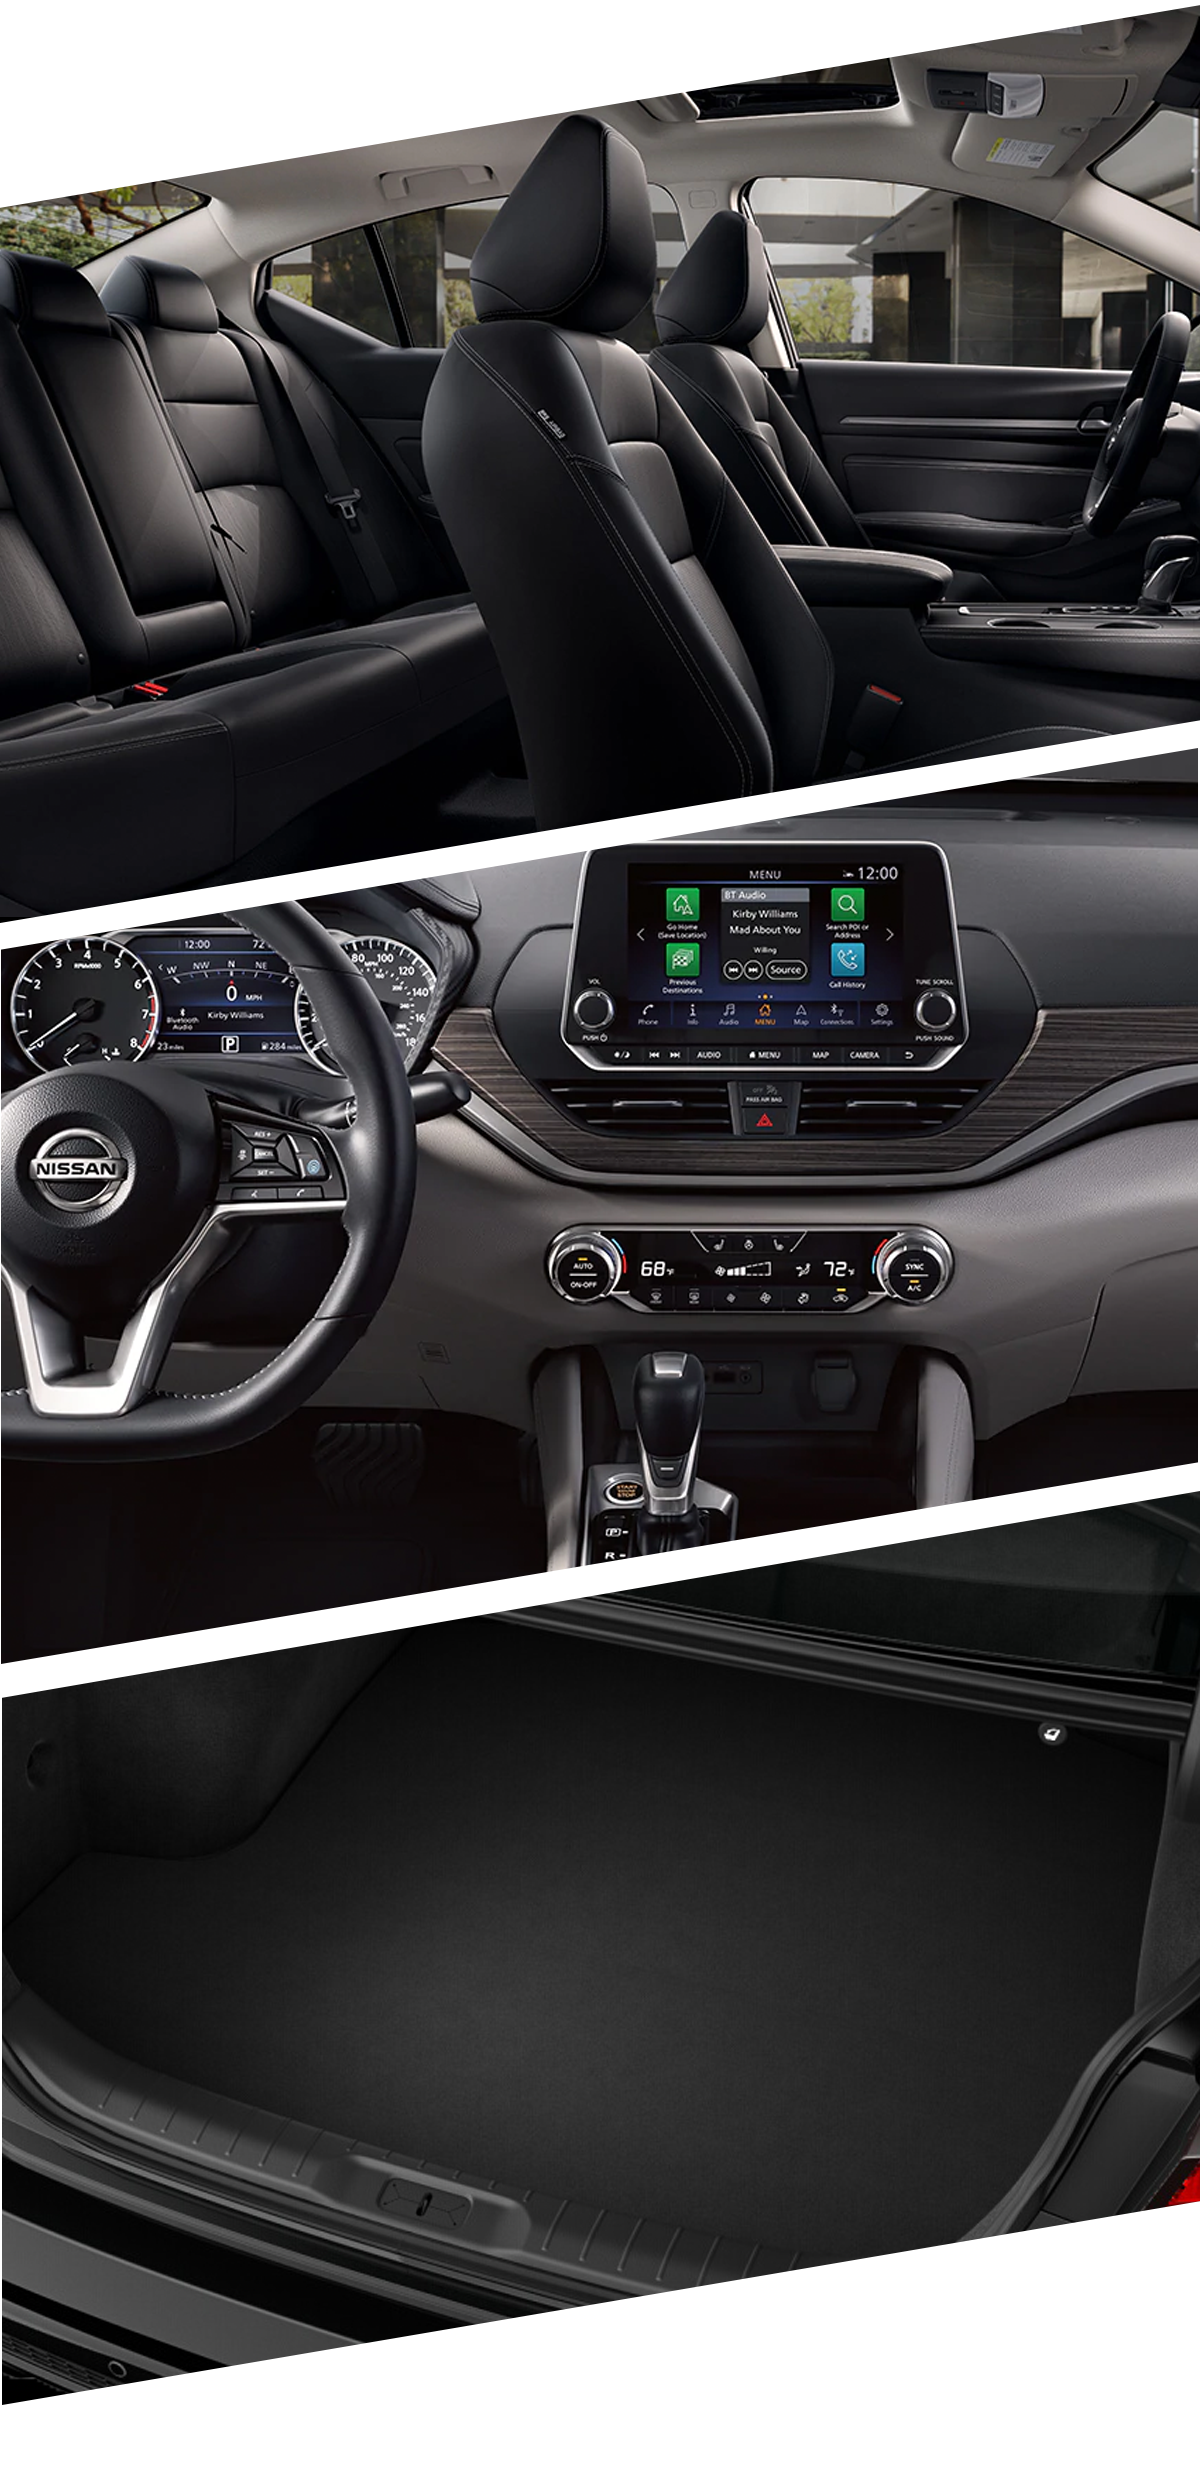 2021 Nissan Altima Interior Images in Fort Walton Beach, FL